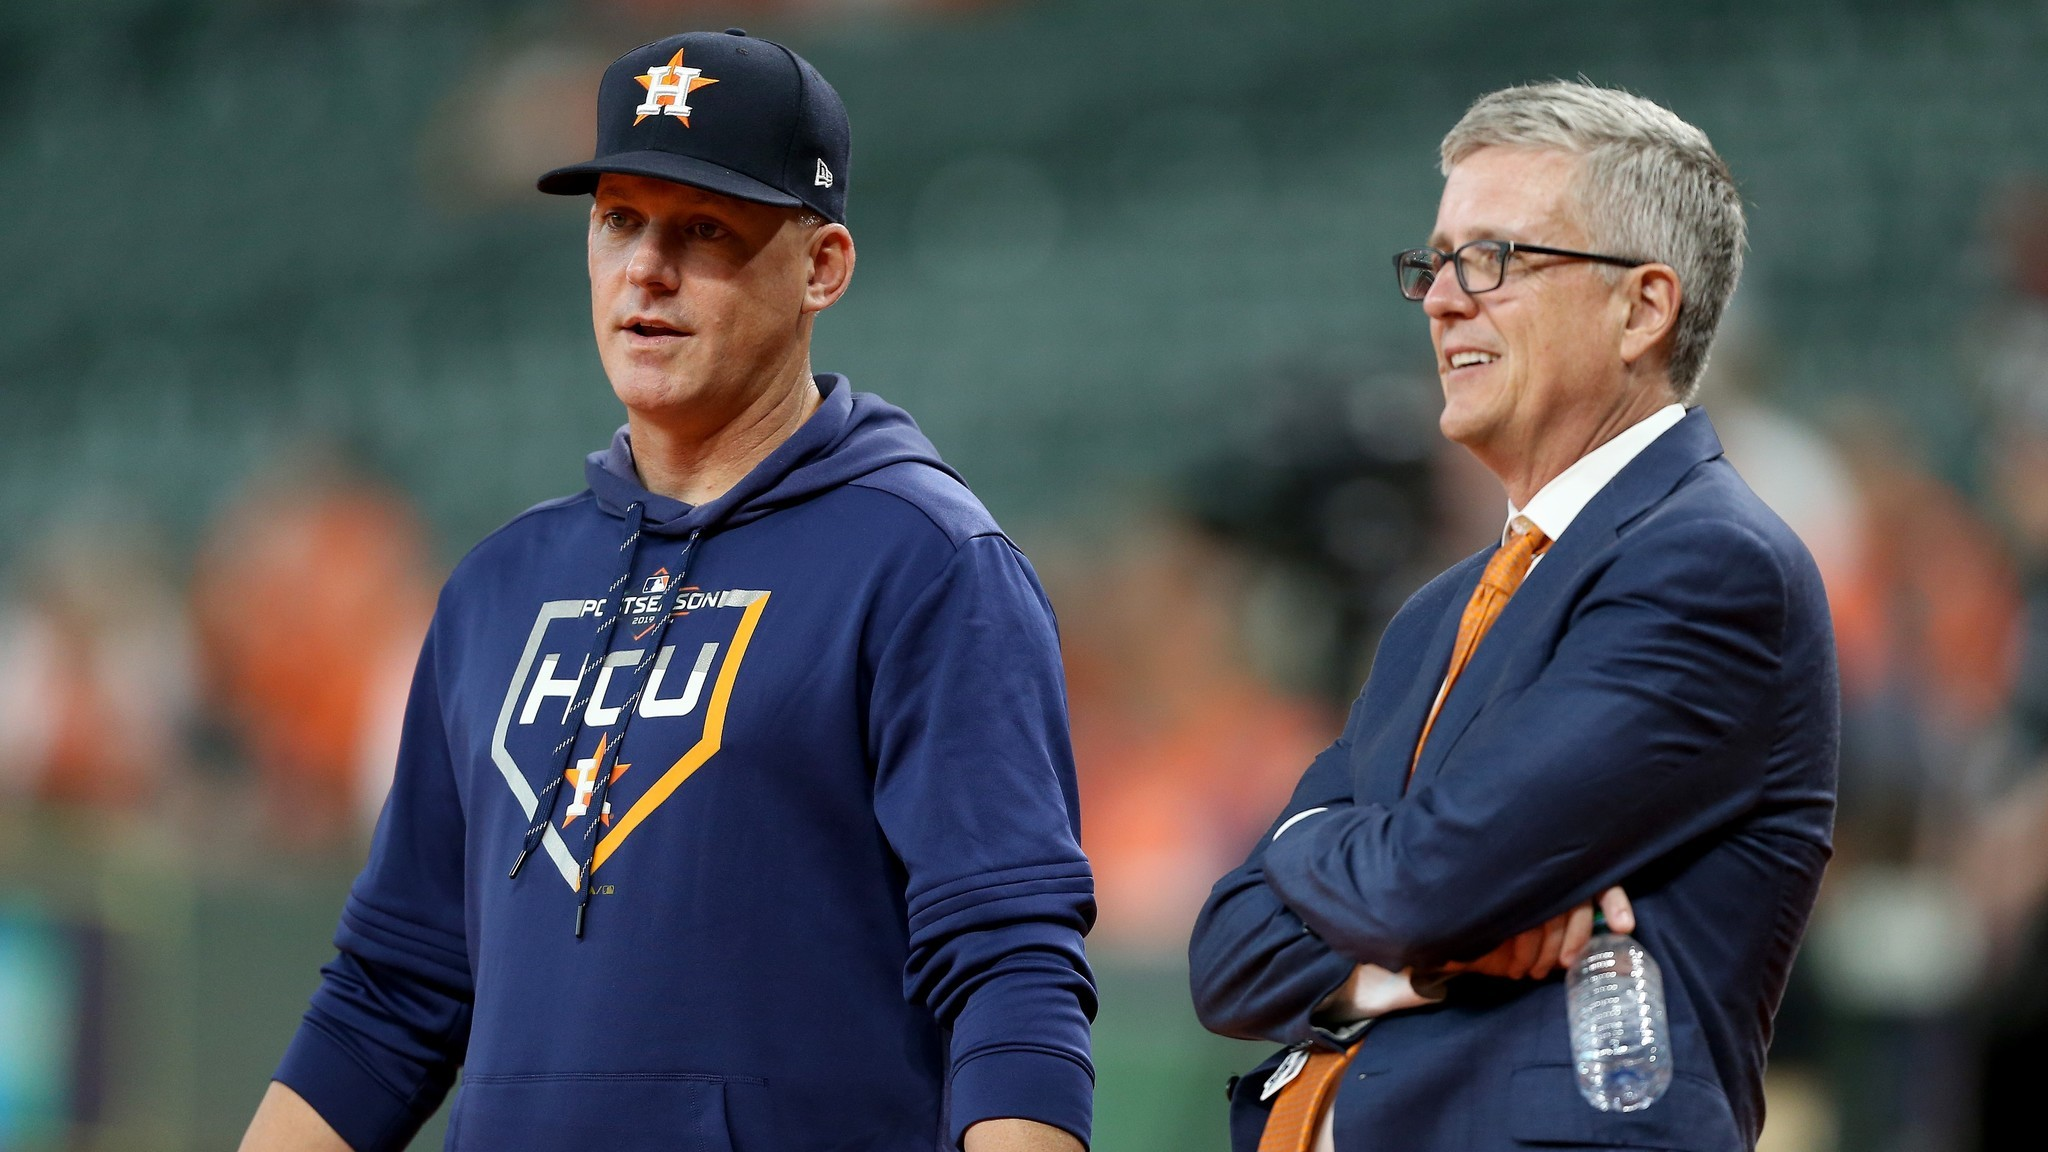 Manager A.J. Hinch, GM Jeff Luhnow get one-year suspensions for Astros' sign-stealing; Carlos Beltran not punished